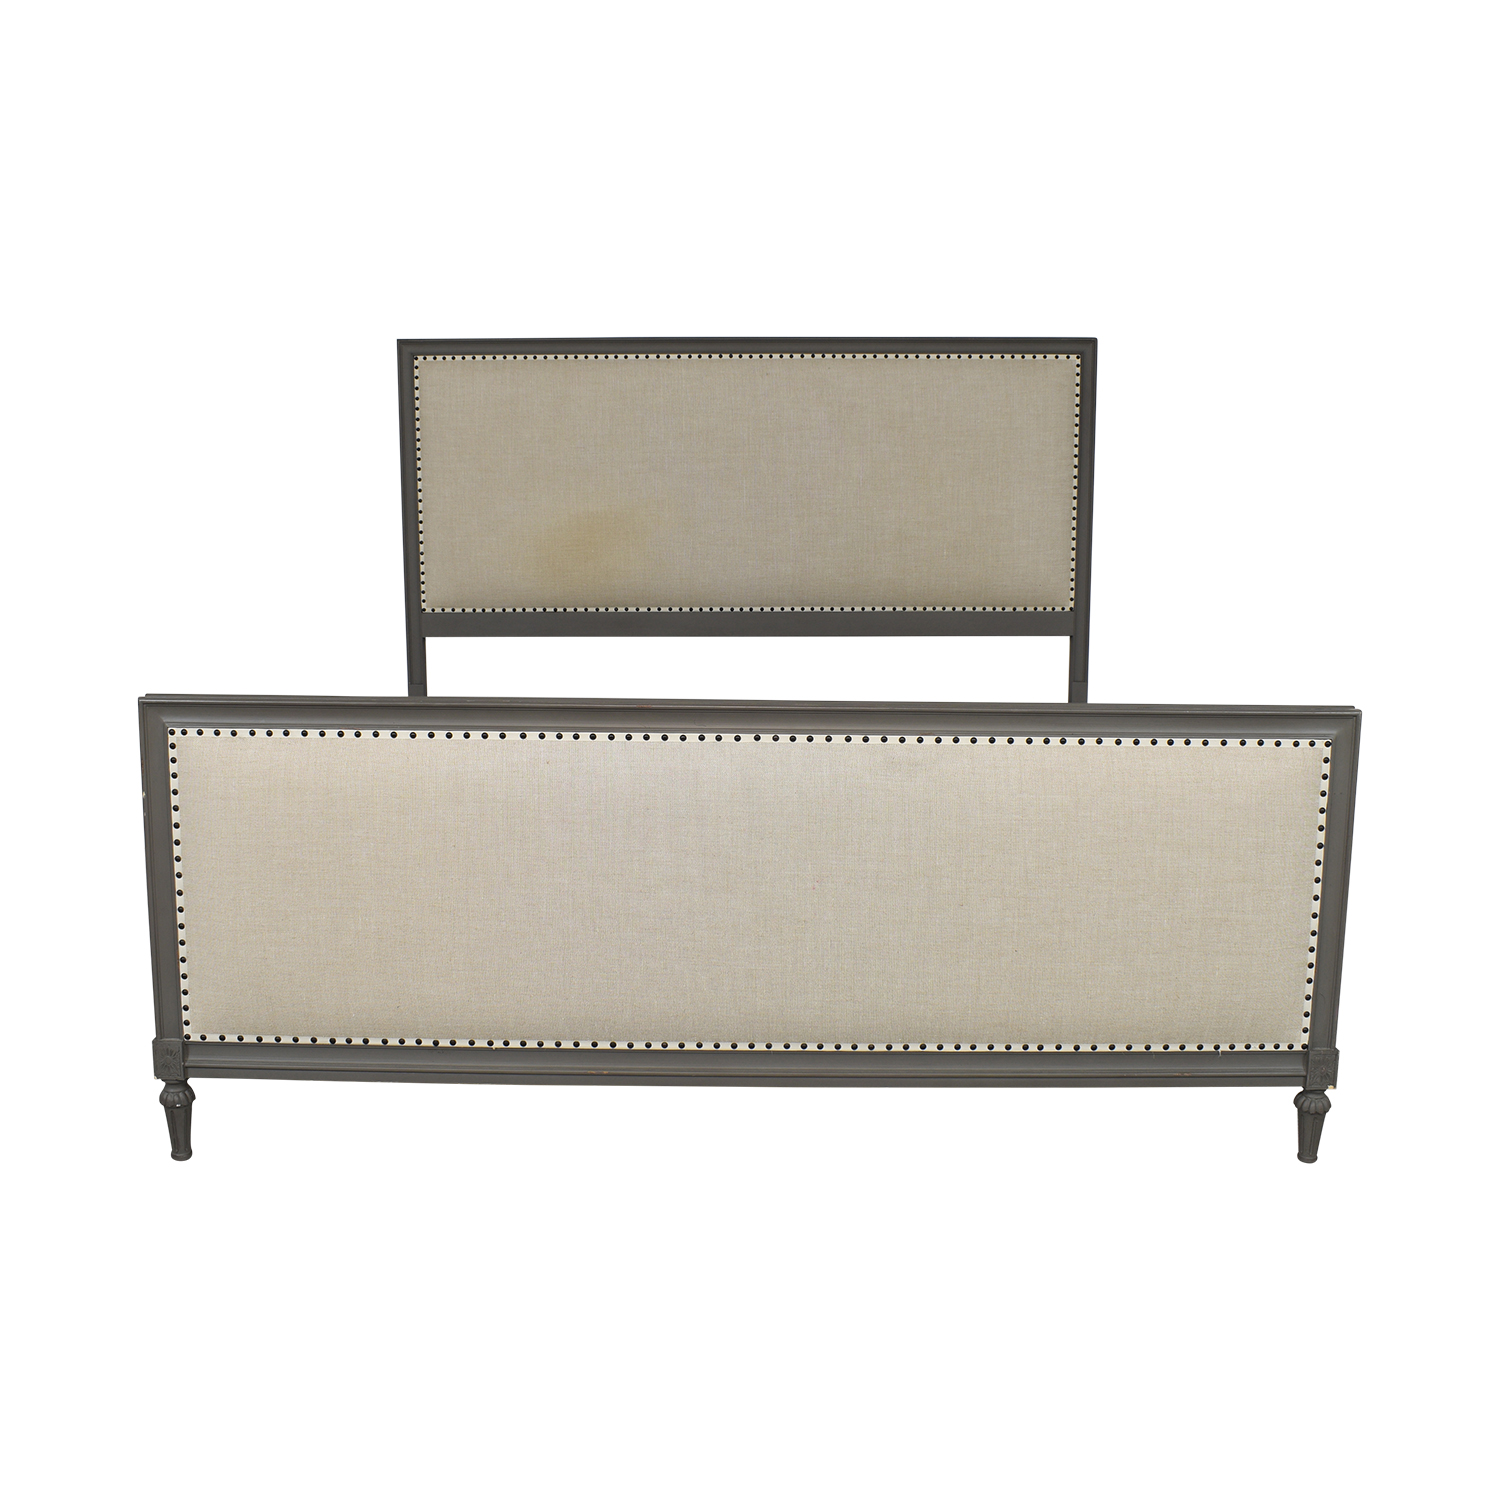 Restoration Hardware Restoration Hardware Maison Panel Fabric Bed with Footboard used